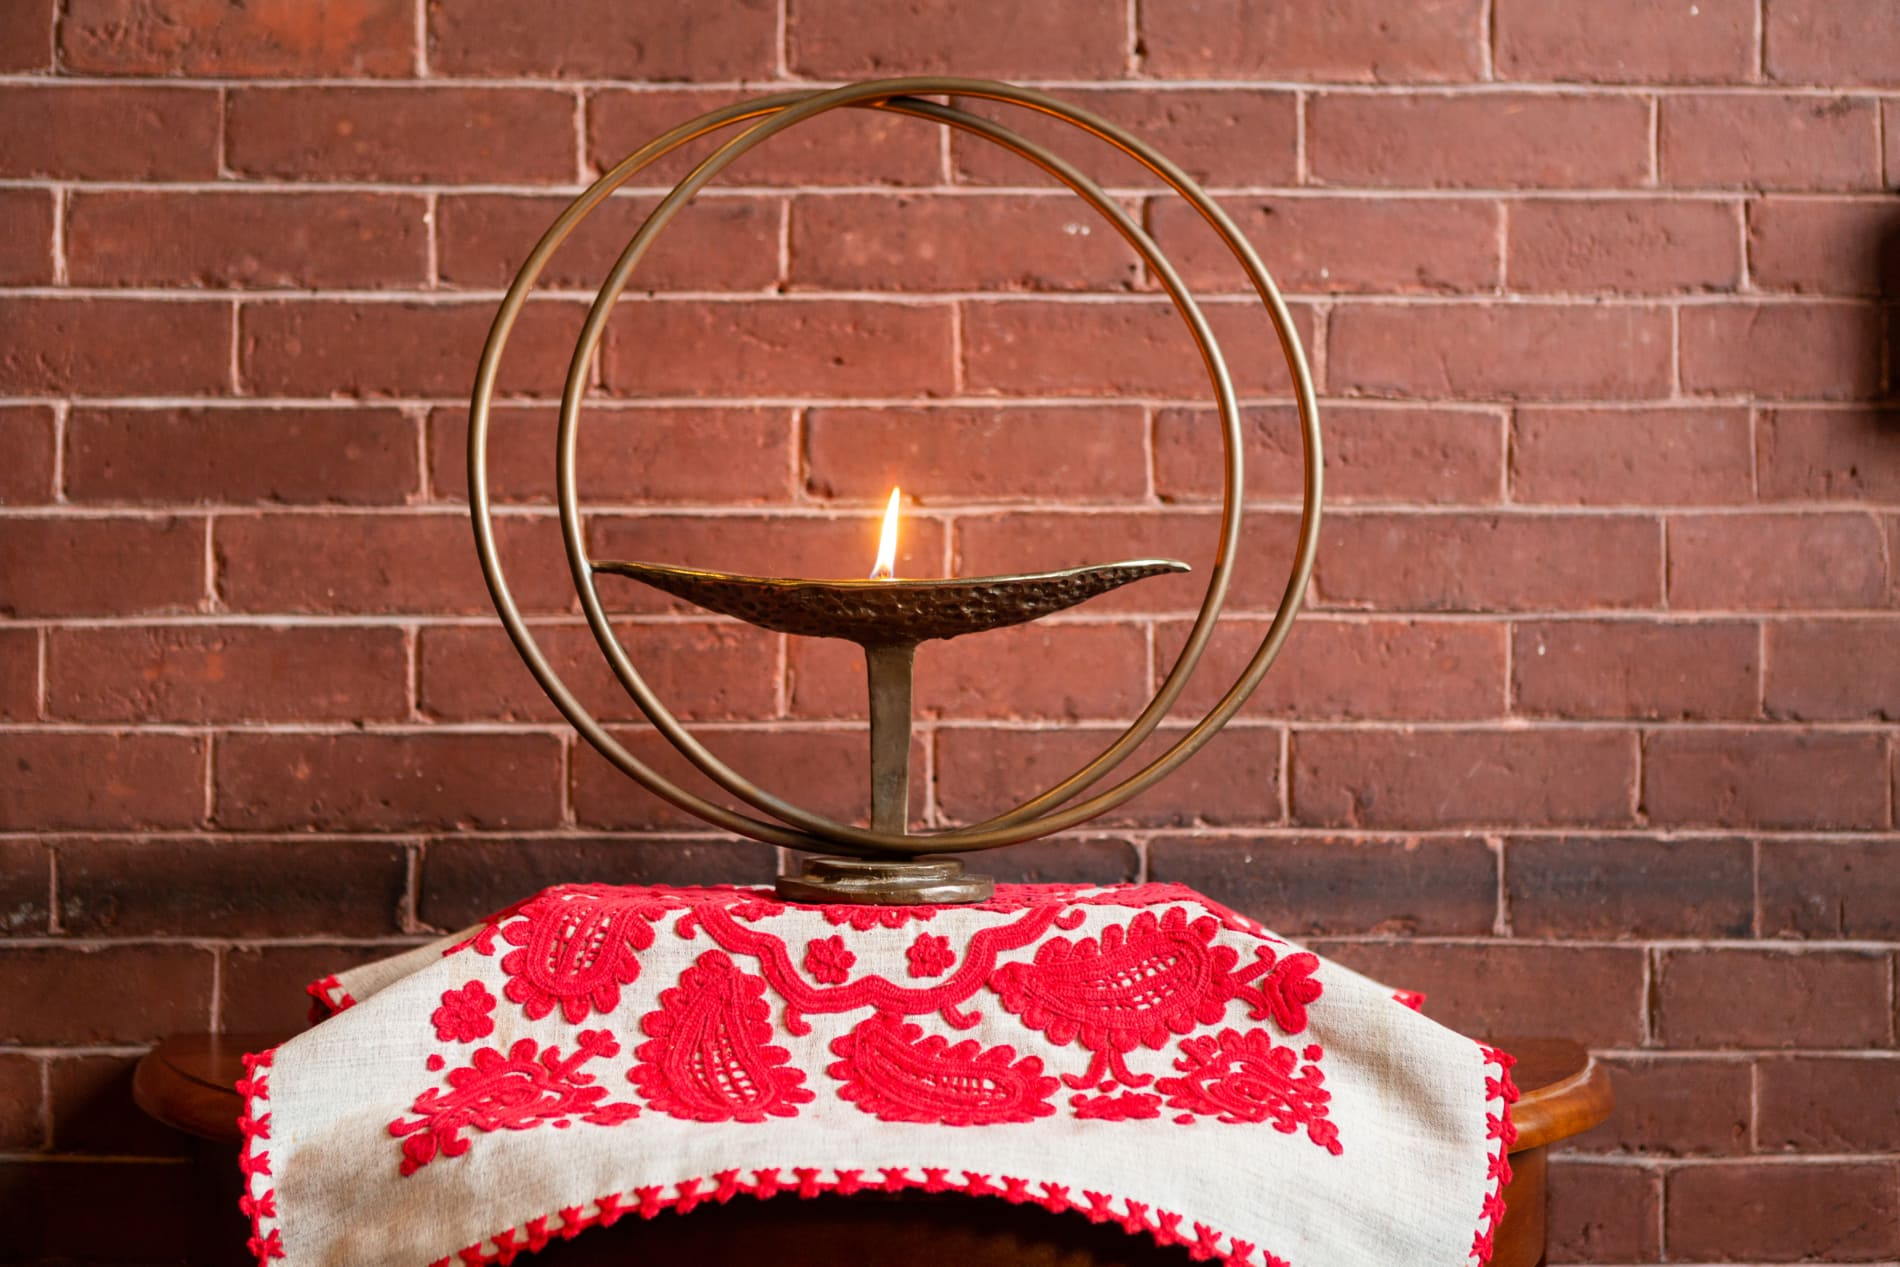 Our flaming chalice, on an altar cloth with traditional Hungarian embroidery.